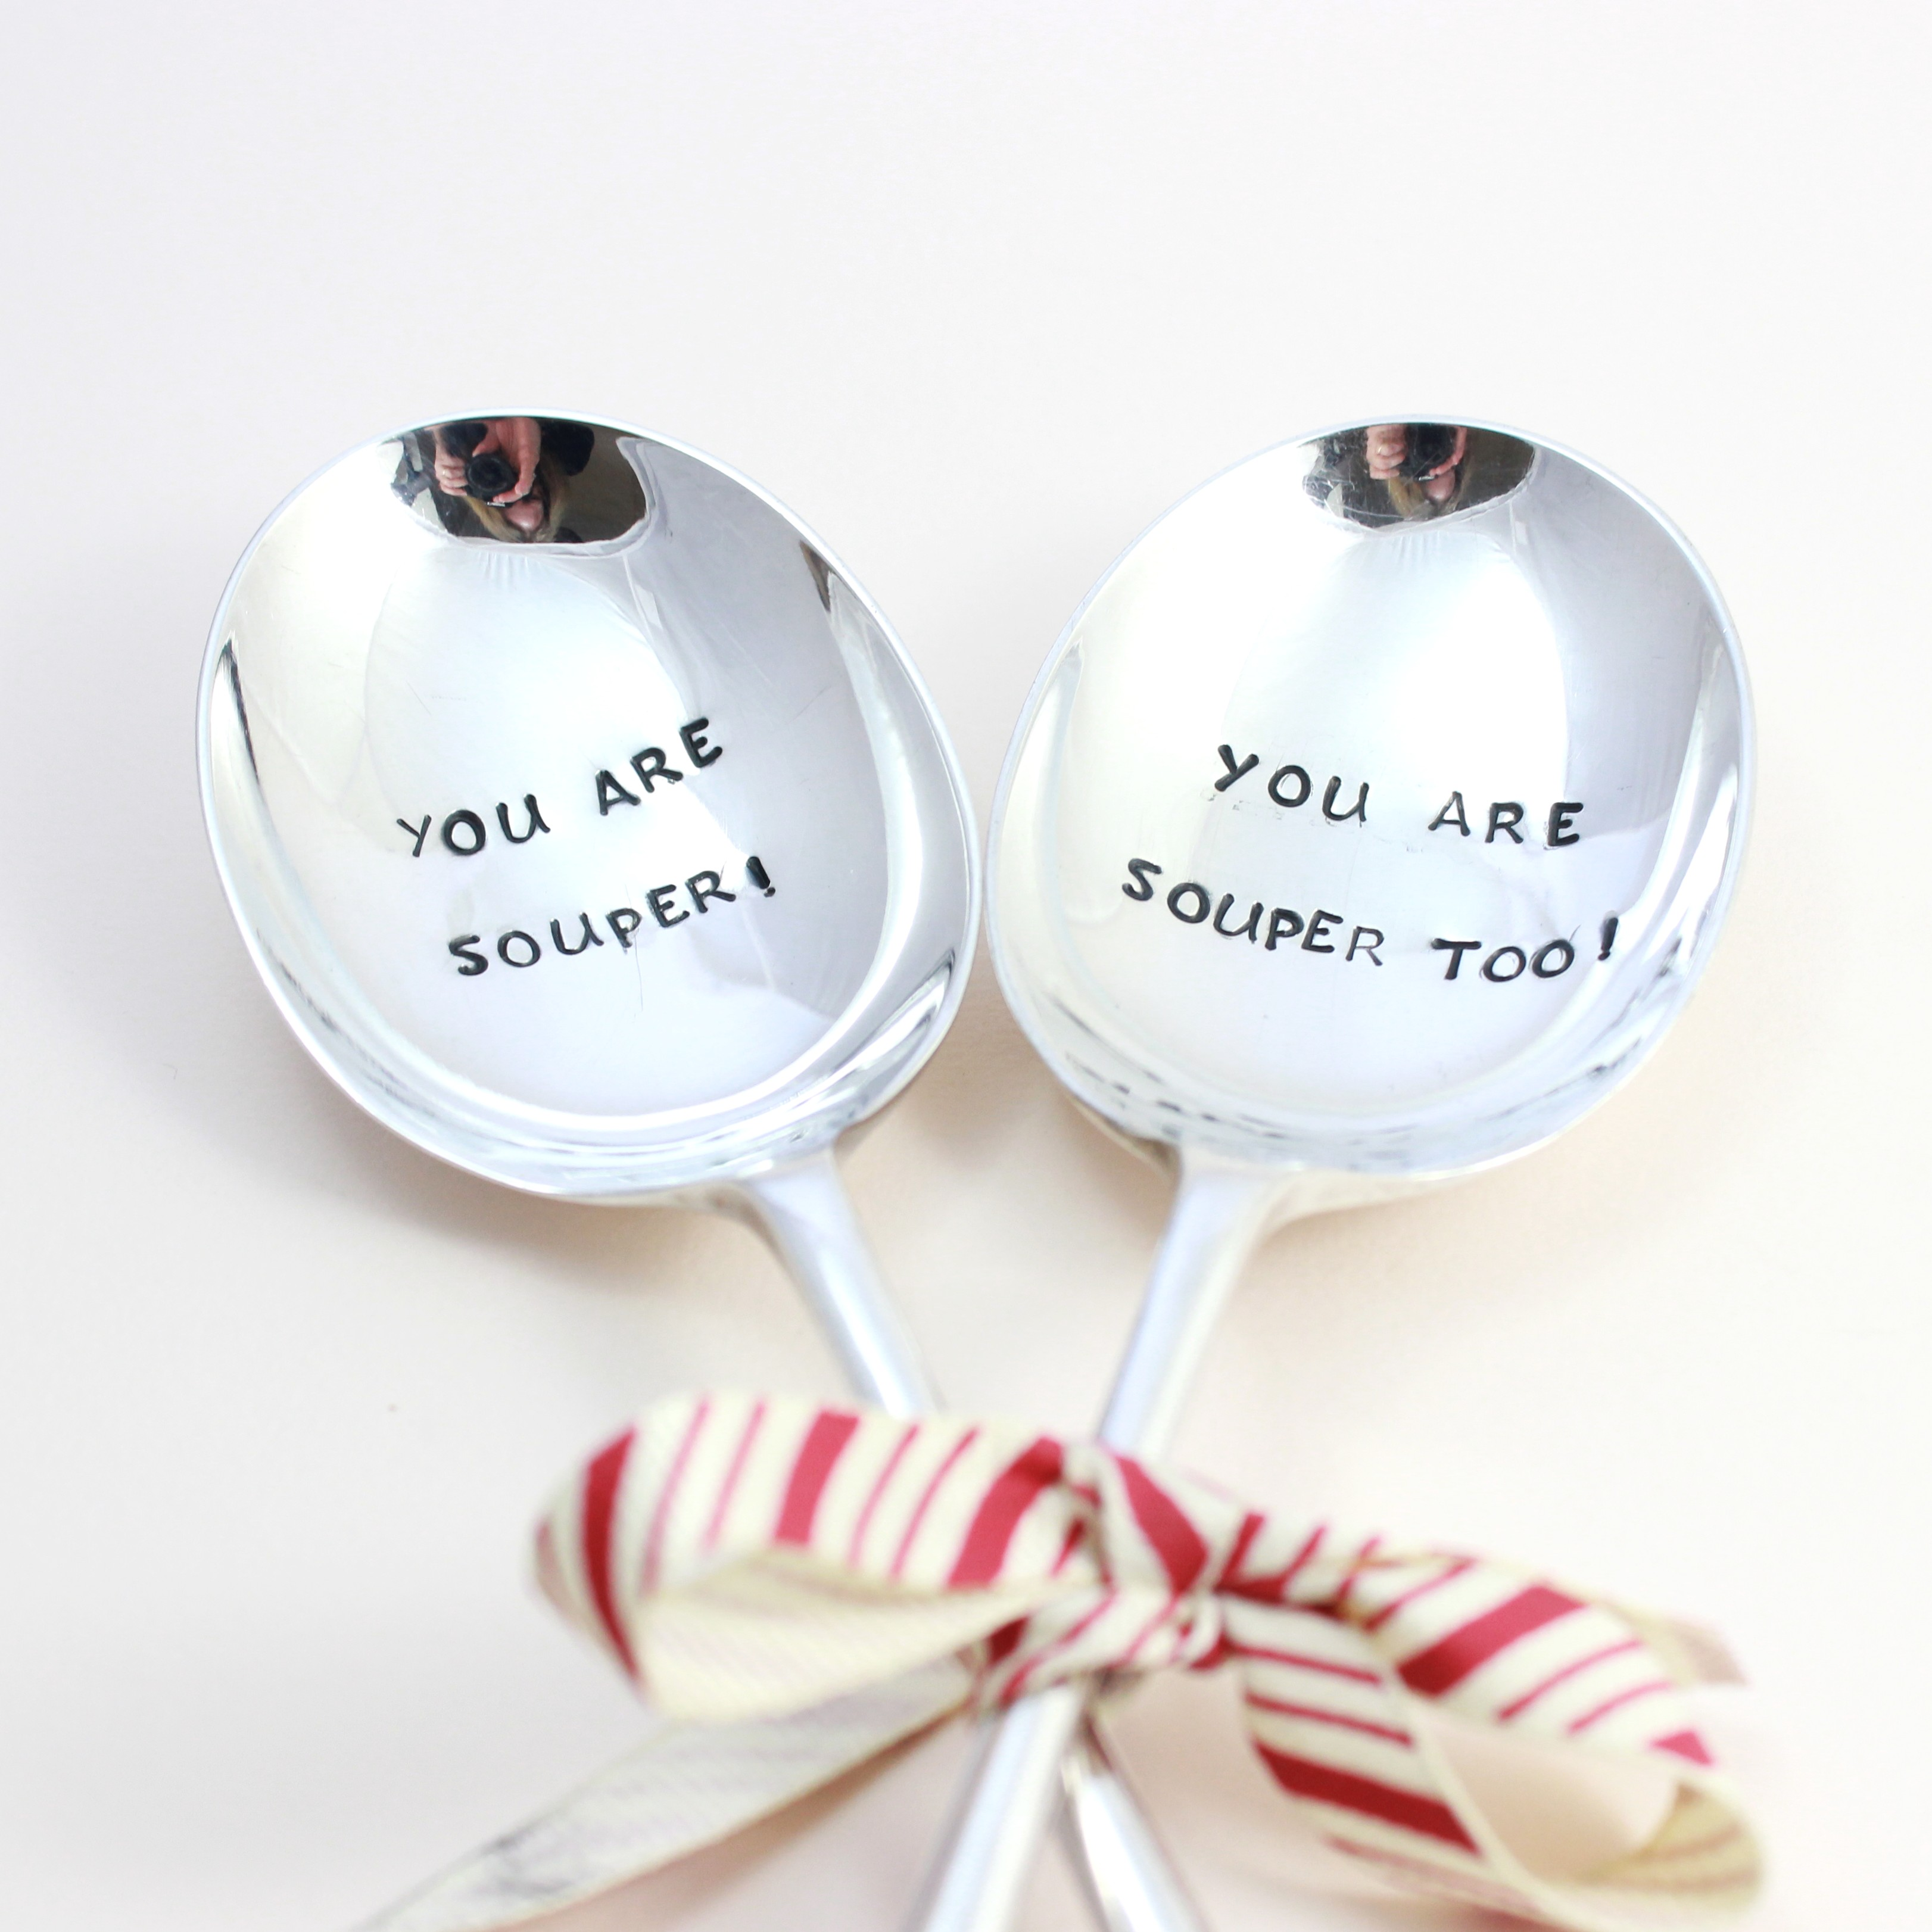 Silver platedpersonalised soup spoons - fab gift for a couple!